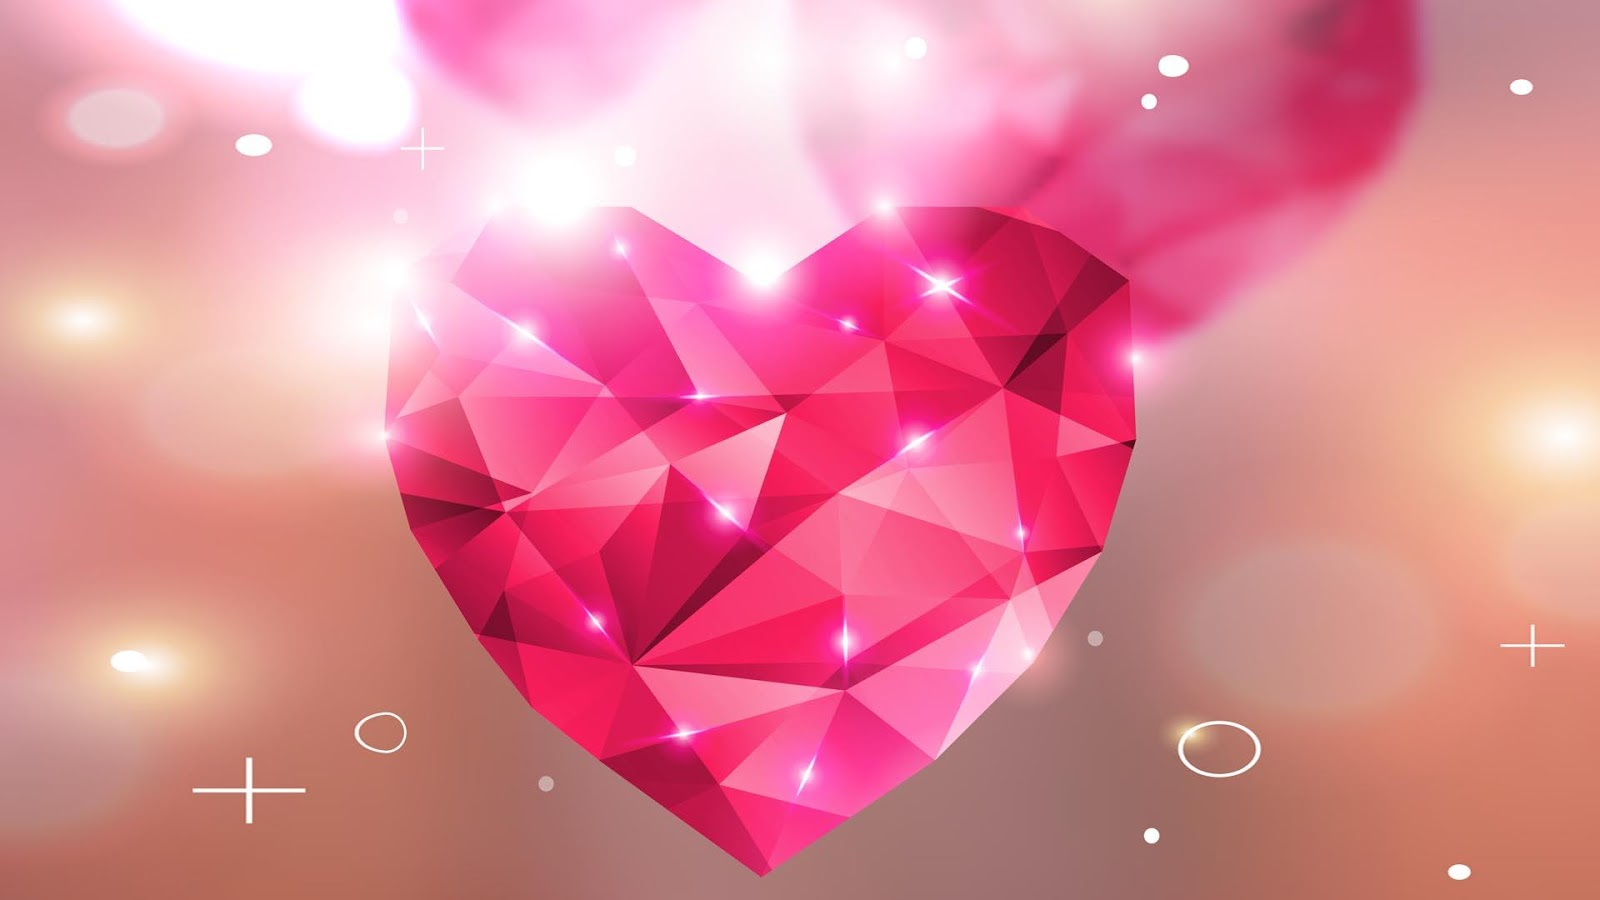 Diamond Hearts Live Wallpaper   Android Apps on Google Play 1600x900